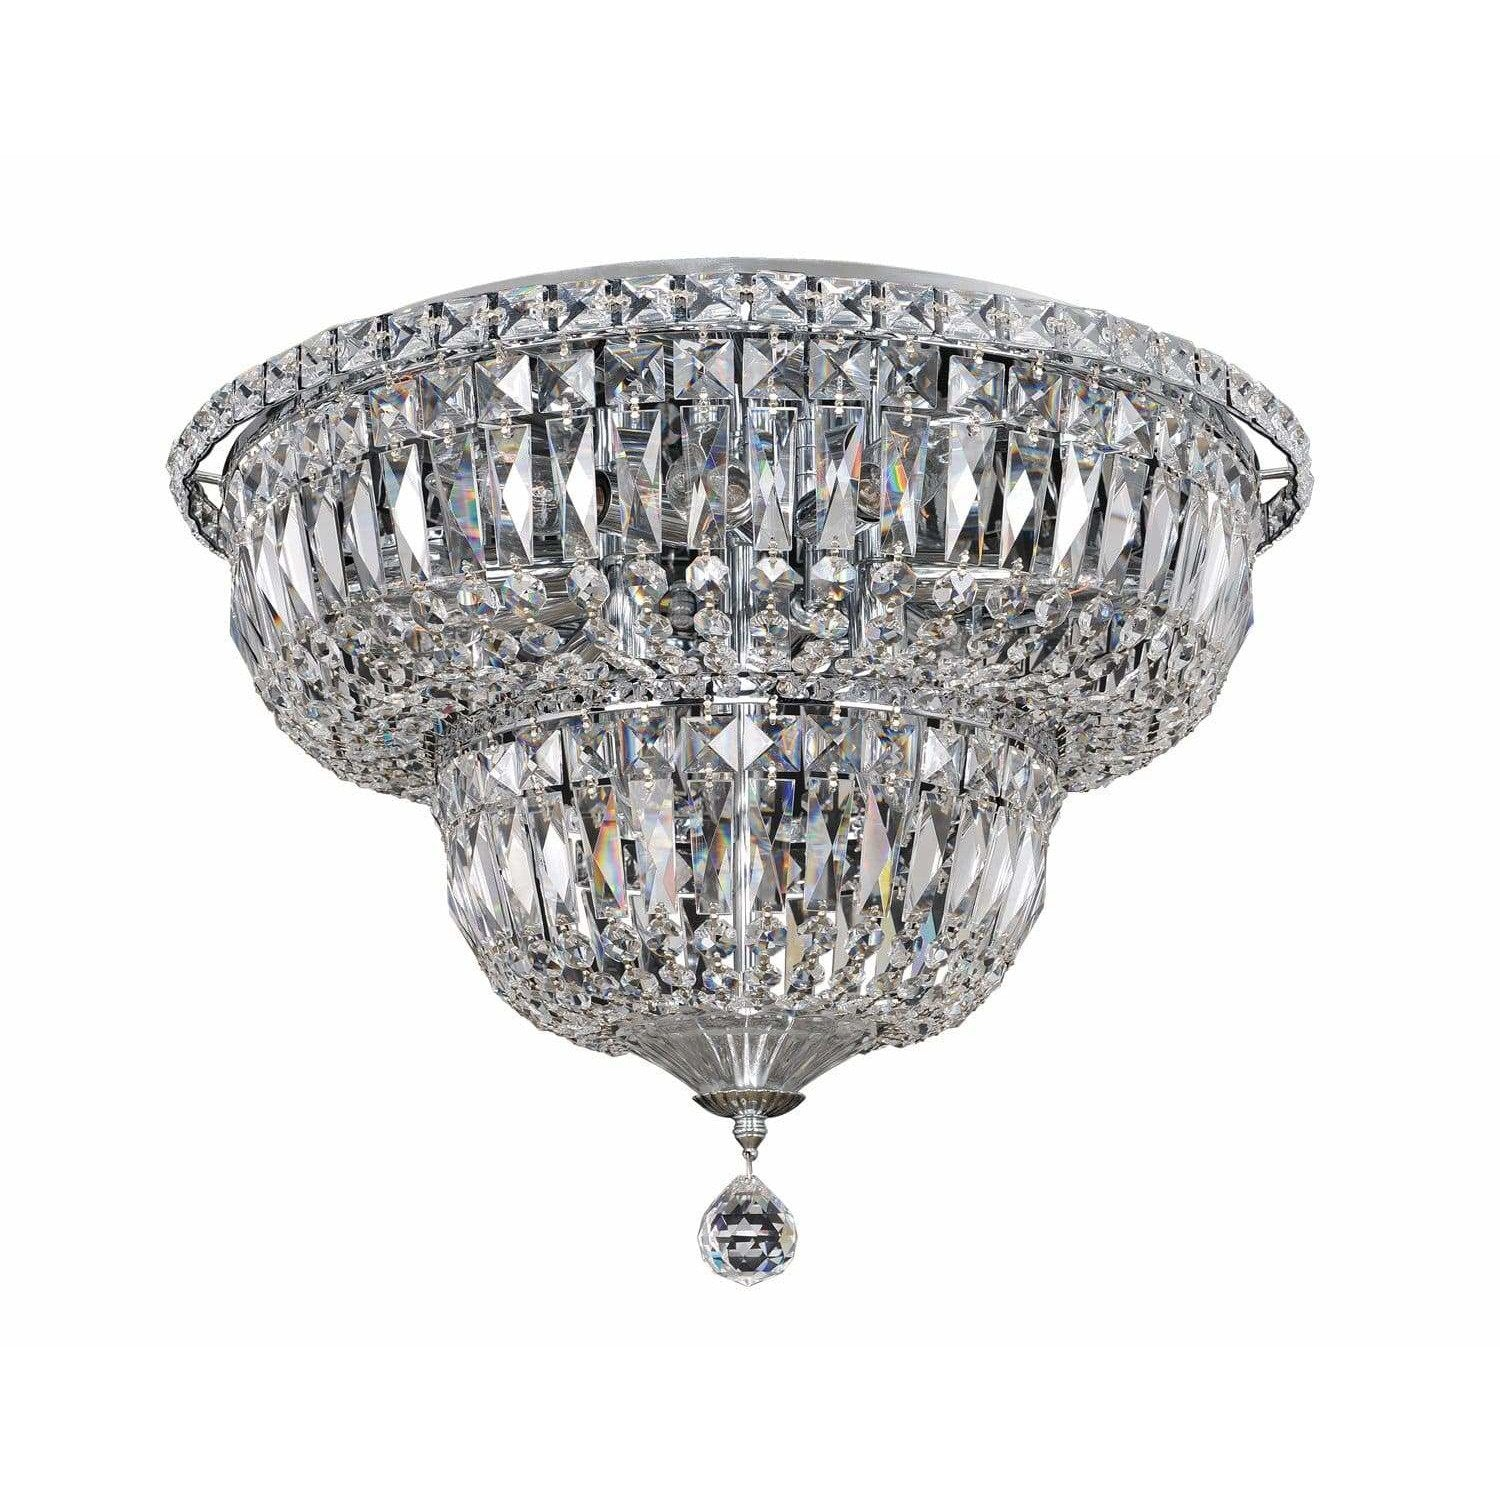 Allegri by Kalco Lighting Flush Mounts Chrome / Firenze Clear Betti 12 Light Flush Mount From Allegri by Kalco Lighting 020245